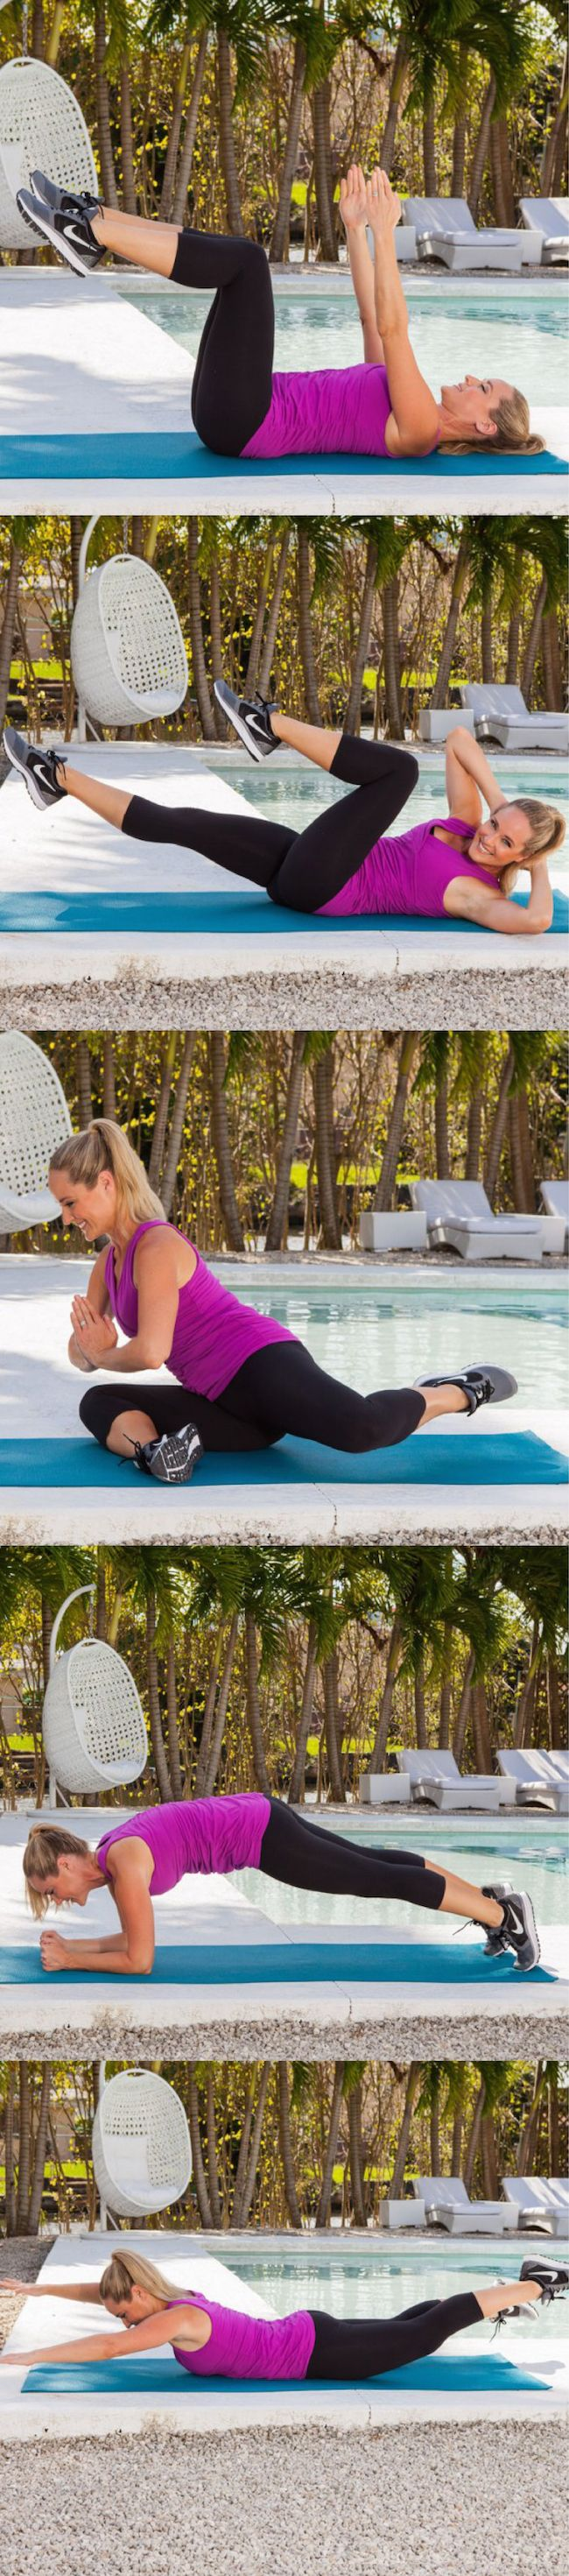 Muffin Top Melter! The 11 Best Muffin Top Exercises